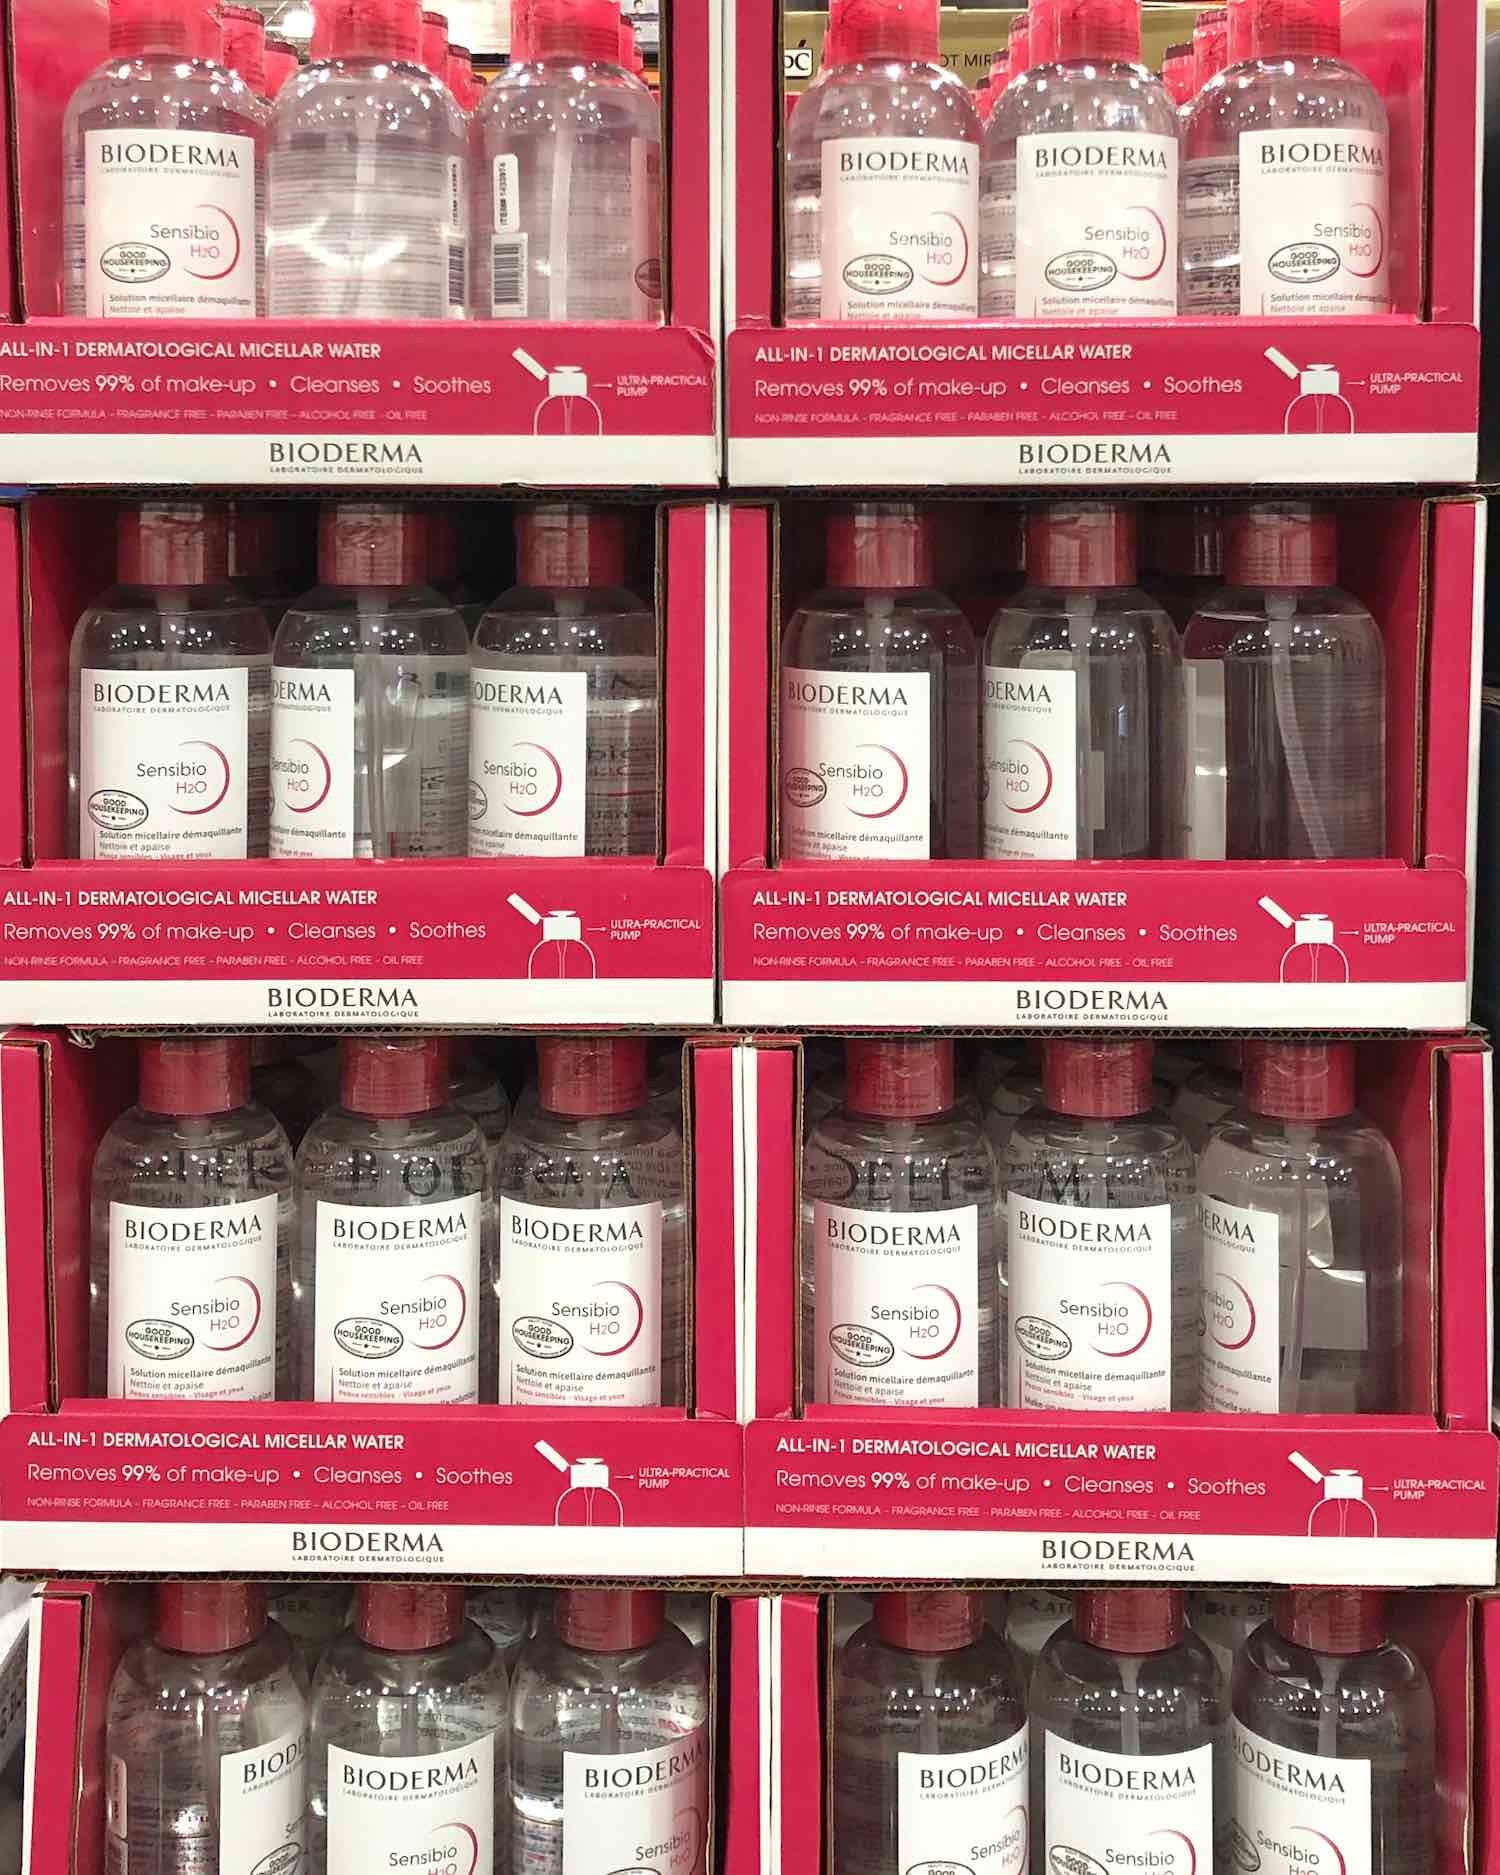 Best Beauty Buys at Costco - Bioderma Sensibio at Costco